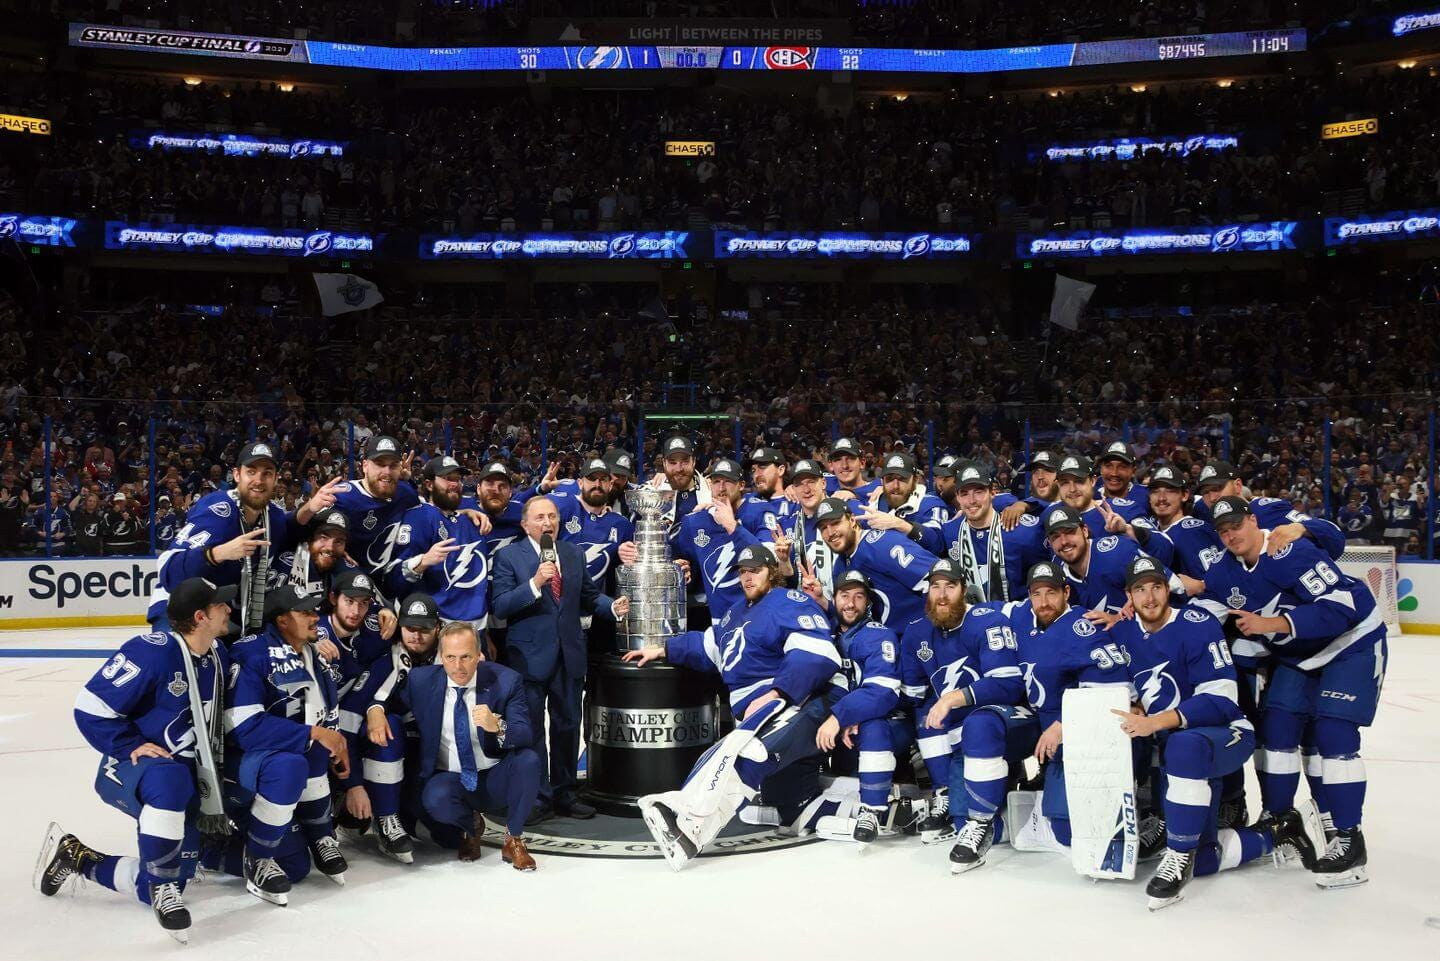 Stanley Cup Final: Lightning win Stanley Cup, beat Canadiens 1-0 in Game 5  - The Athletic